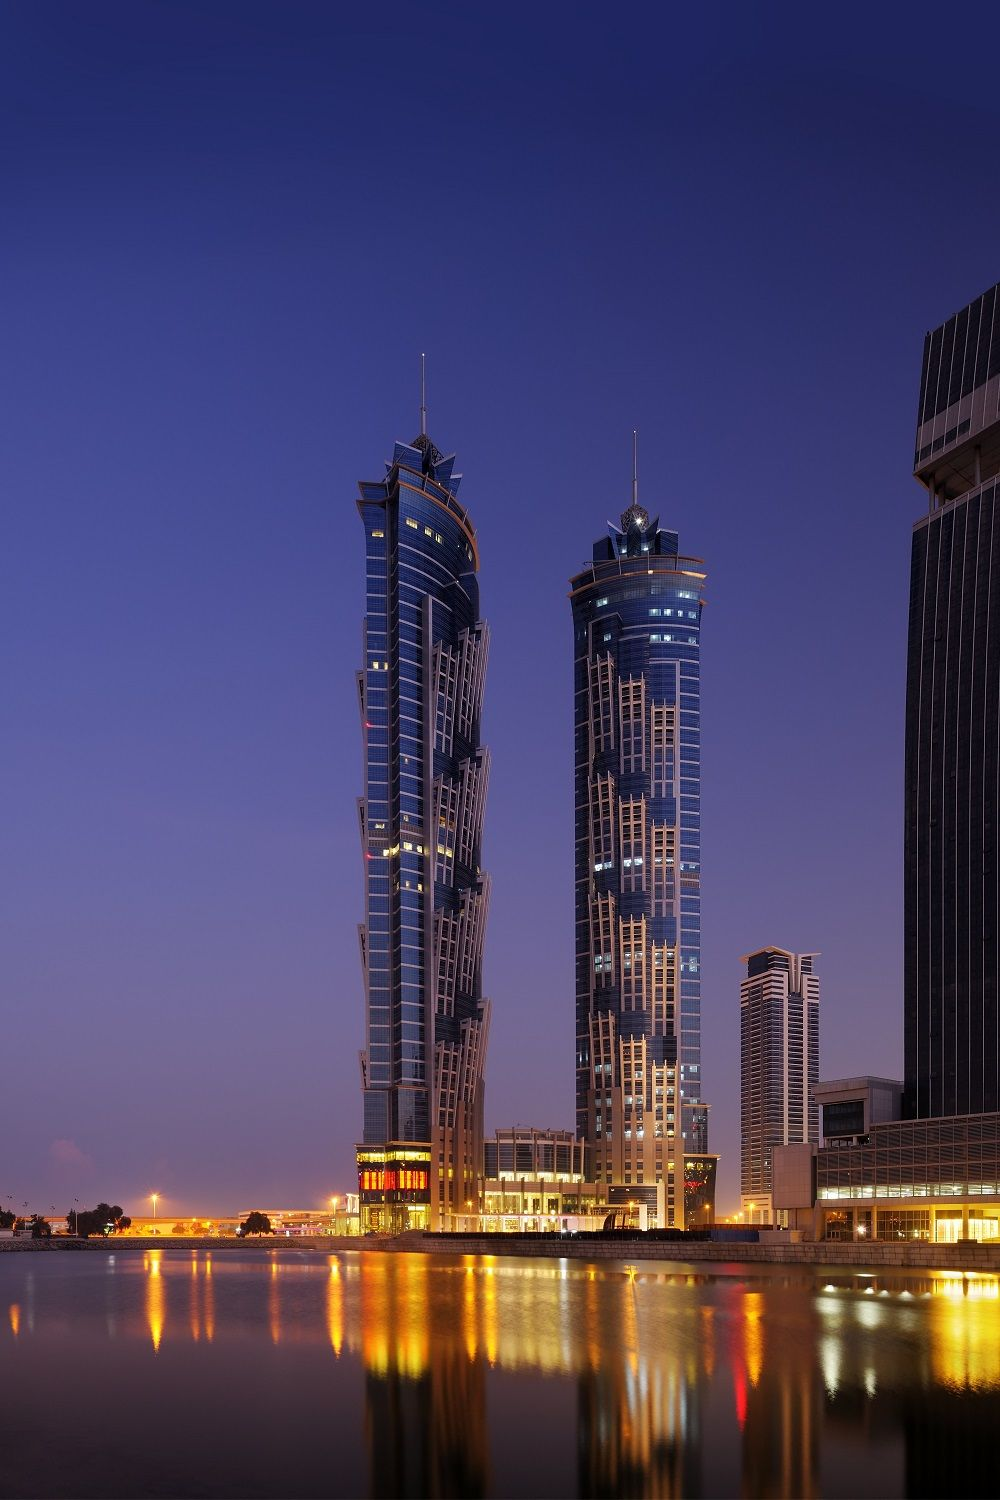 Worlds Tallest Hotel Opens In DubaiThe JW Marriotts Marquis Dubai Formally Opened Feb 2013 After Gaining The Title Of From Guinness World